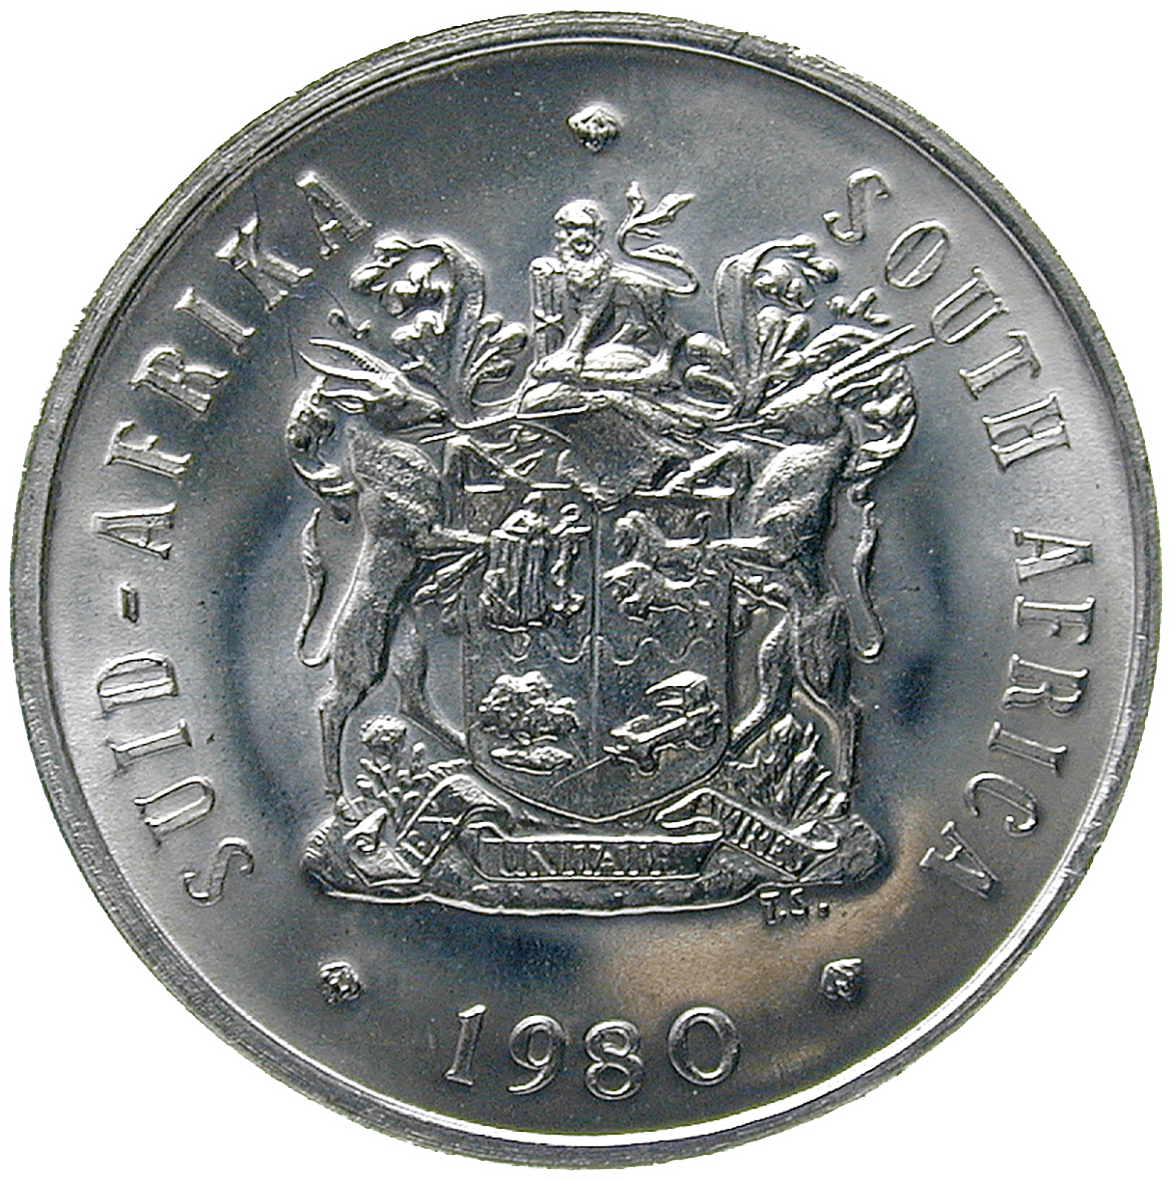 Republic of South Africa, 20 Cents 1980 (obverse)